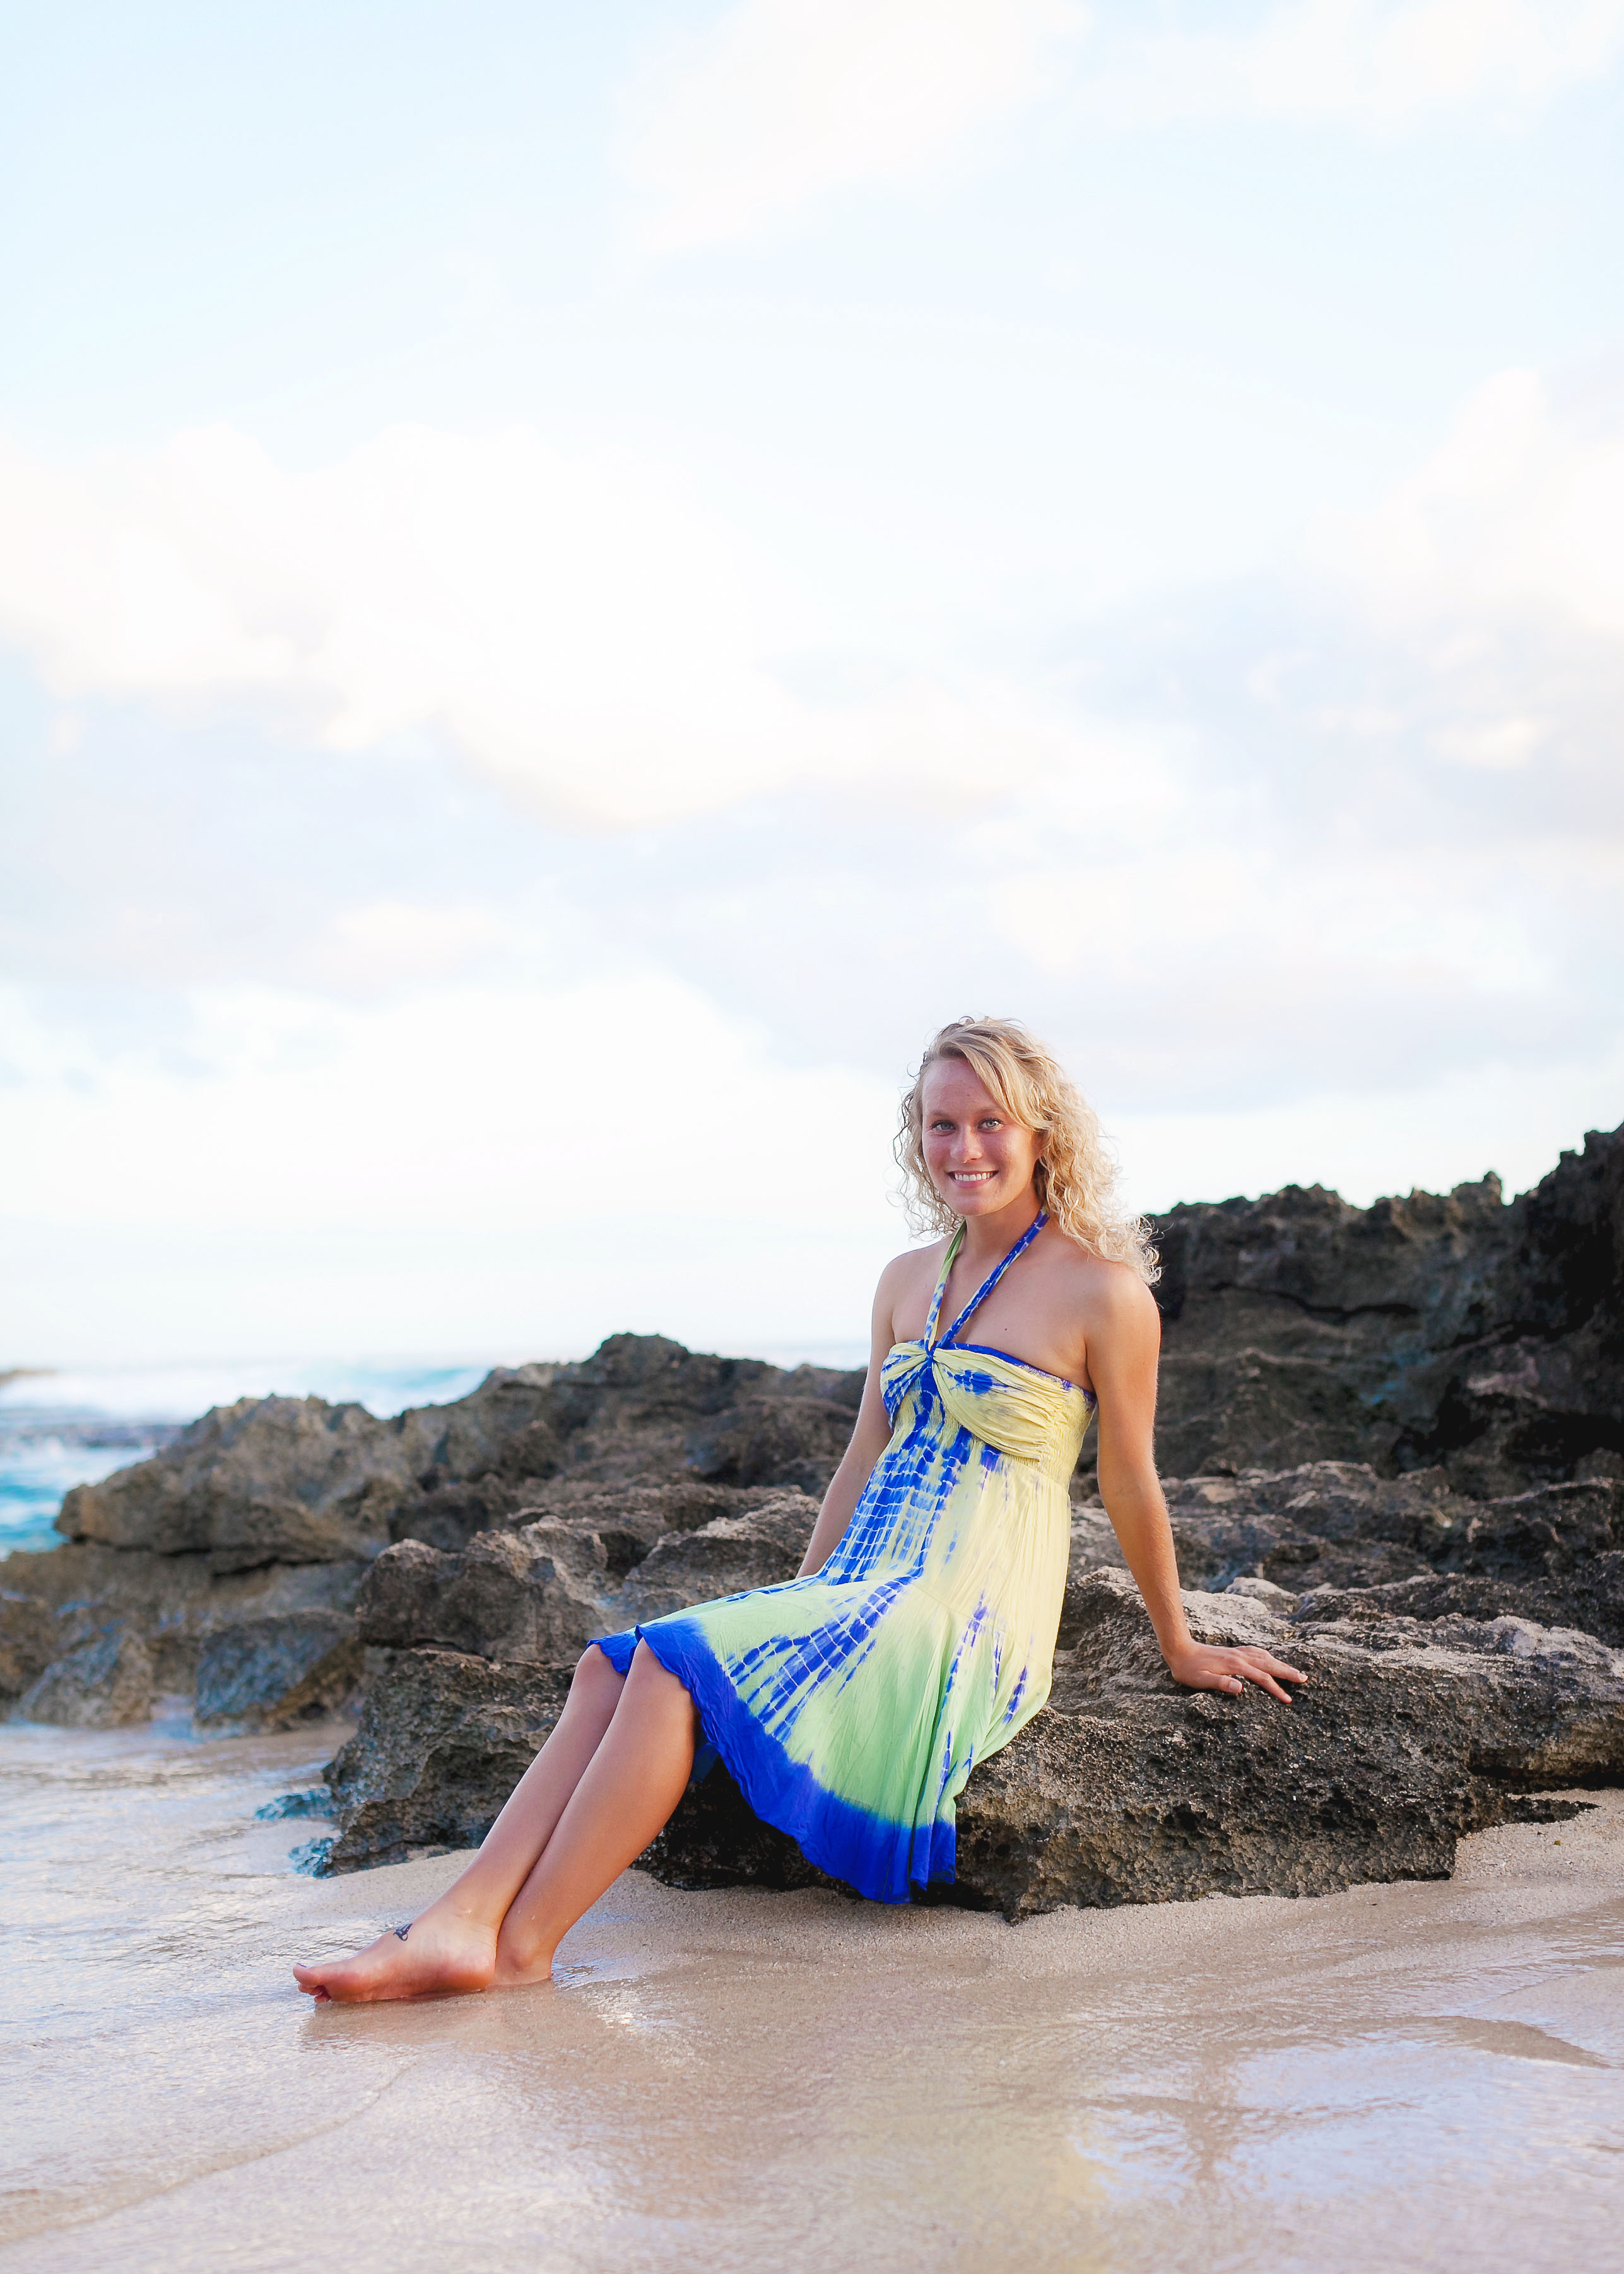 waikiki senior personals Join leading free honolulu online dating service for retired singles and widows from honolulu, hawaii, united states #1 dating site for senior single men/women looking to find adult soulmate.